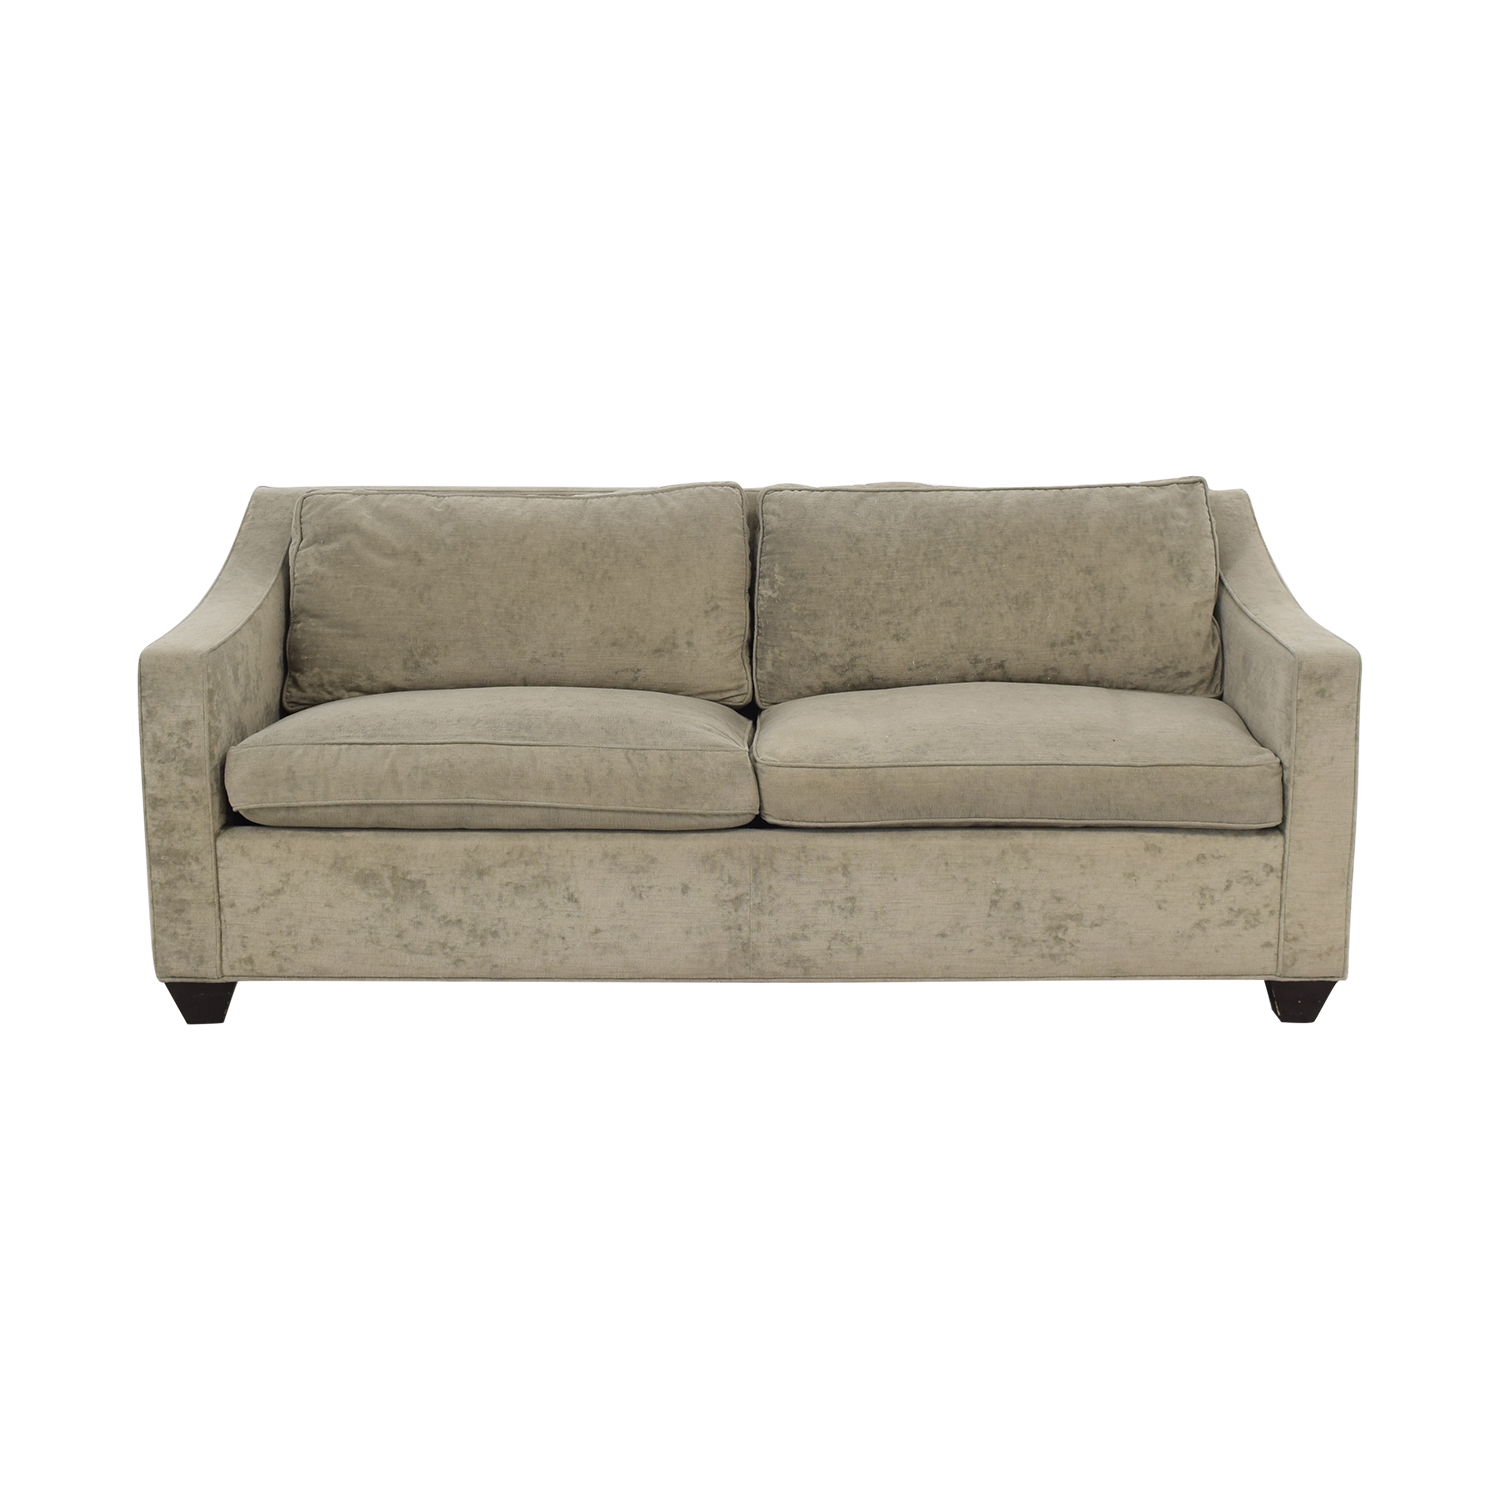 Avery Boardman Avery Boardman Track Arm Sofa nyc